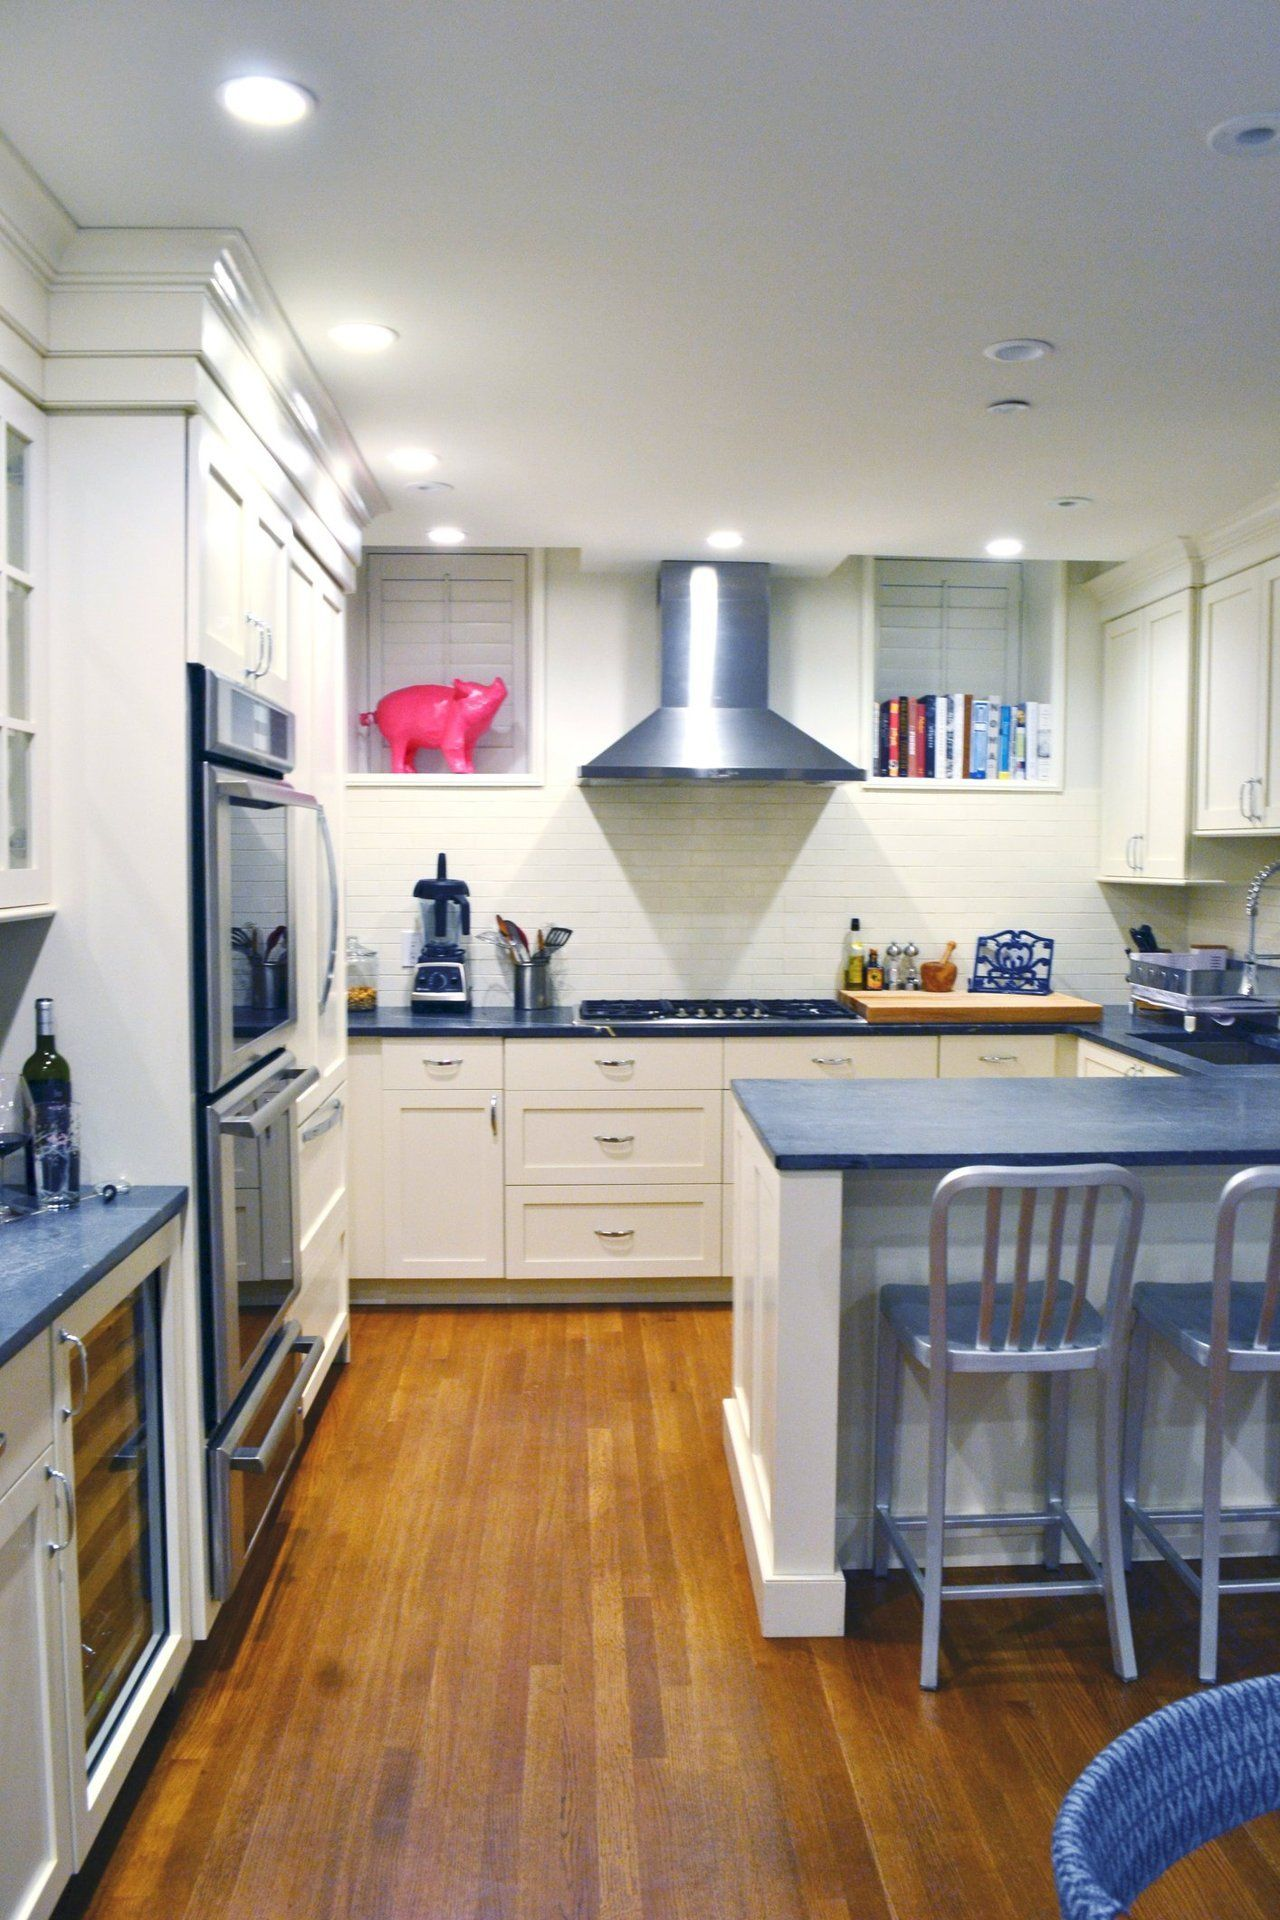 Abby S Fabled South End Townhouse Kitchen Inspirations Kitchen Style Home Kitchens